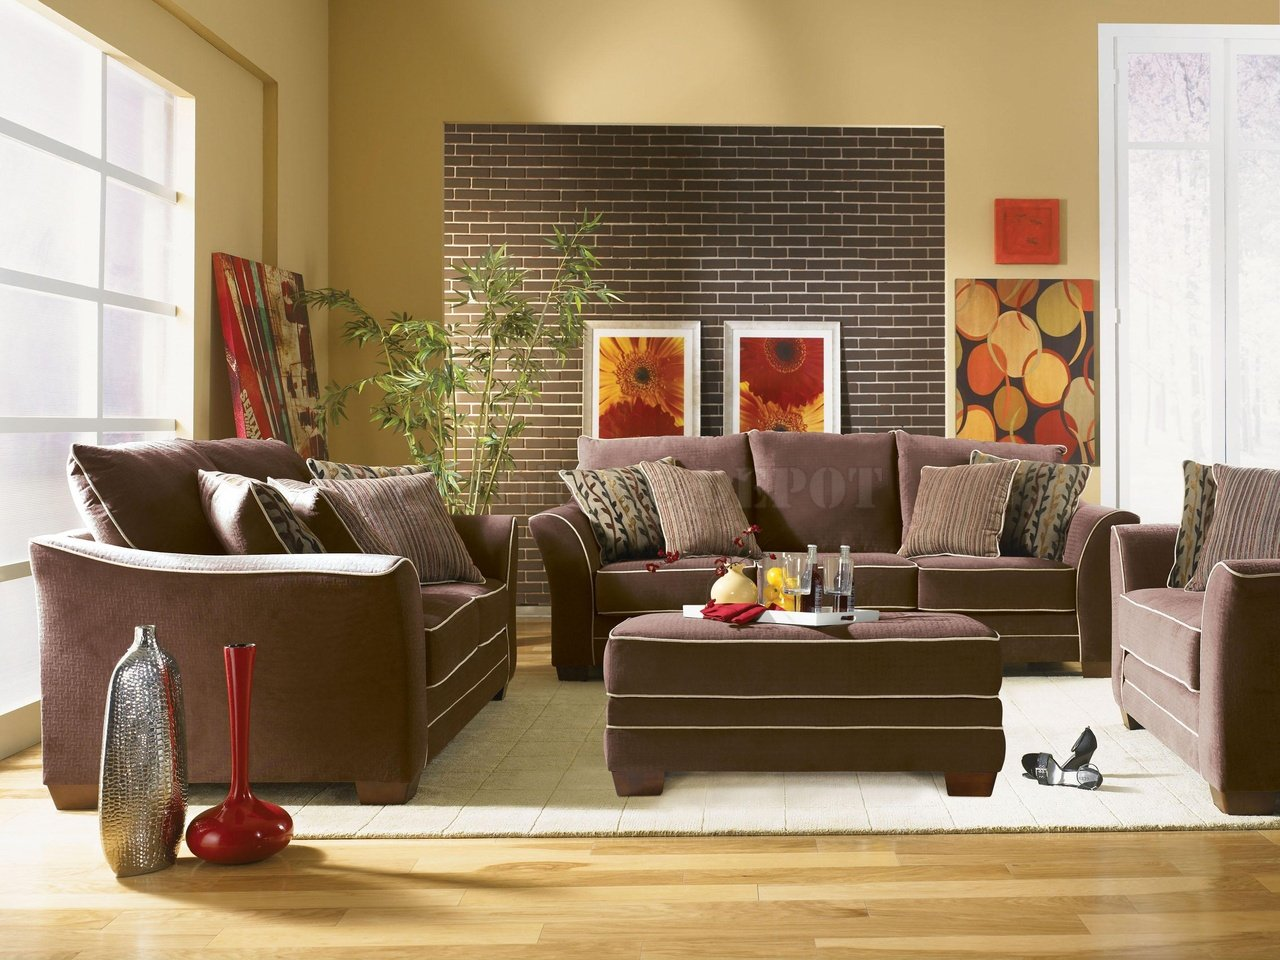 Interior design ideas interior designs home design ideas for Couch designs for living room